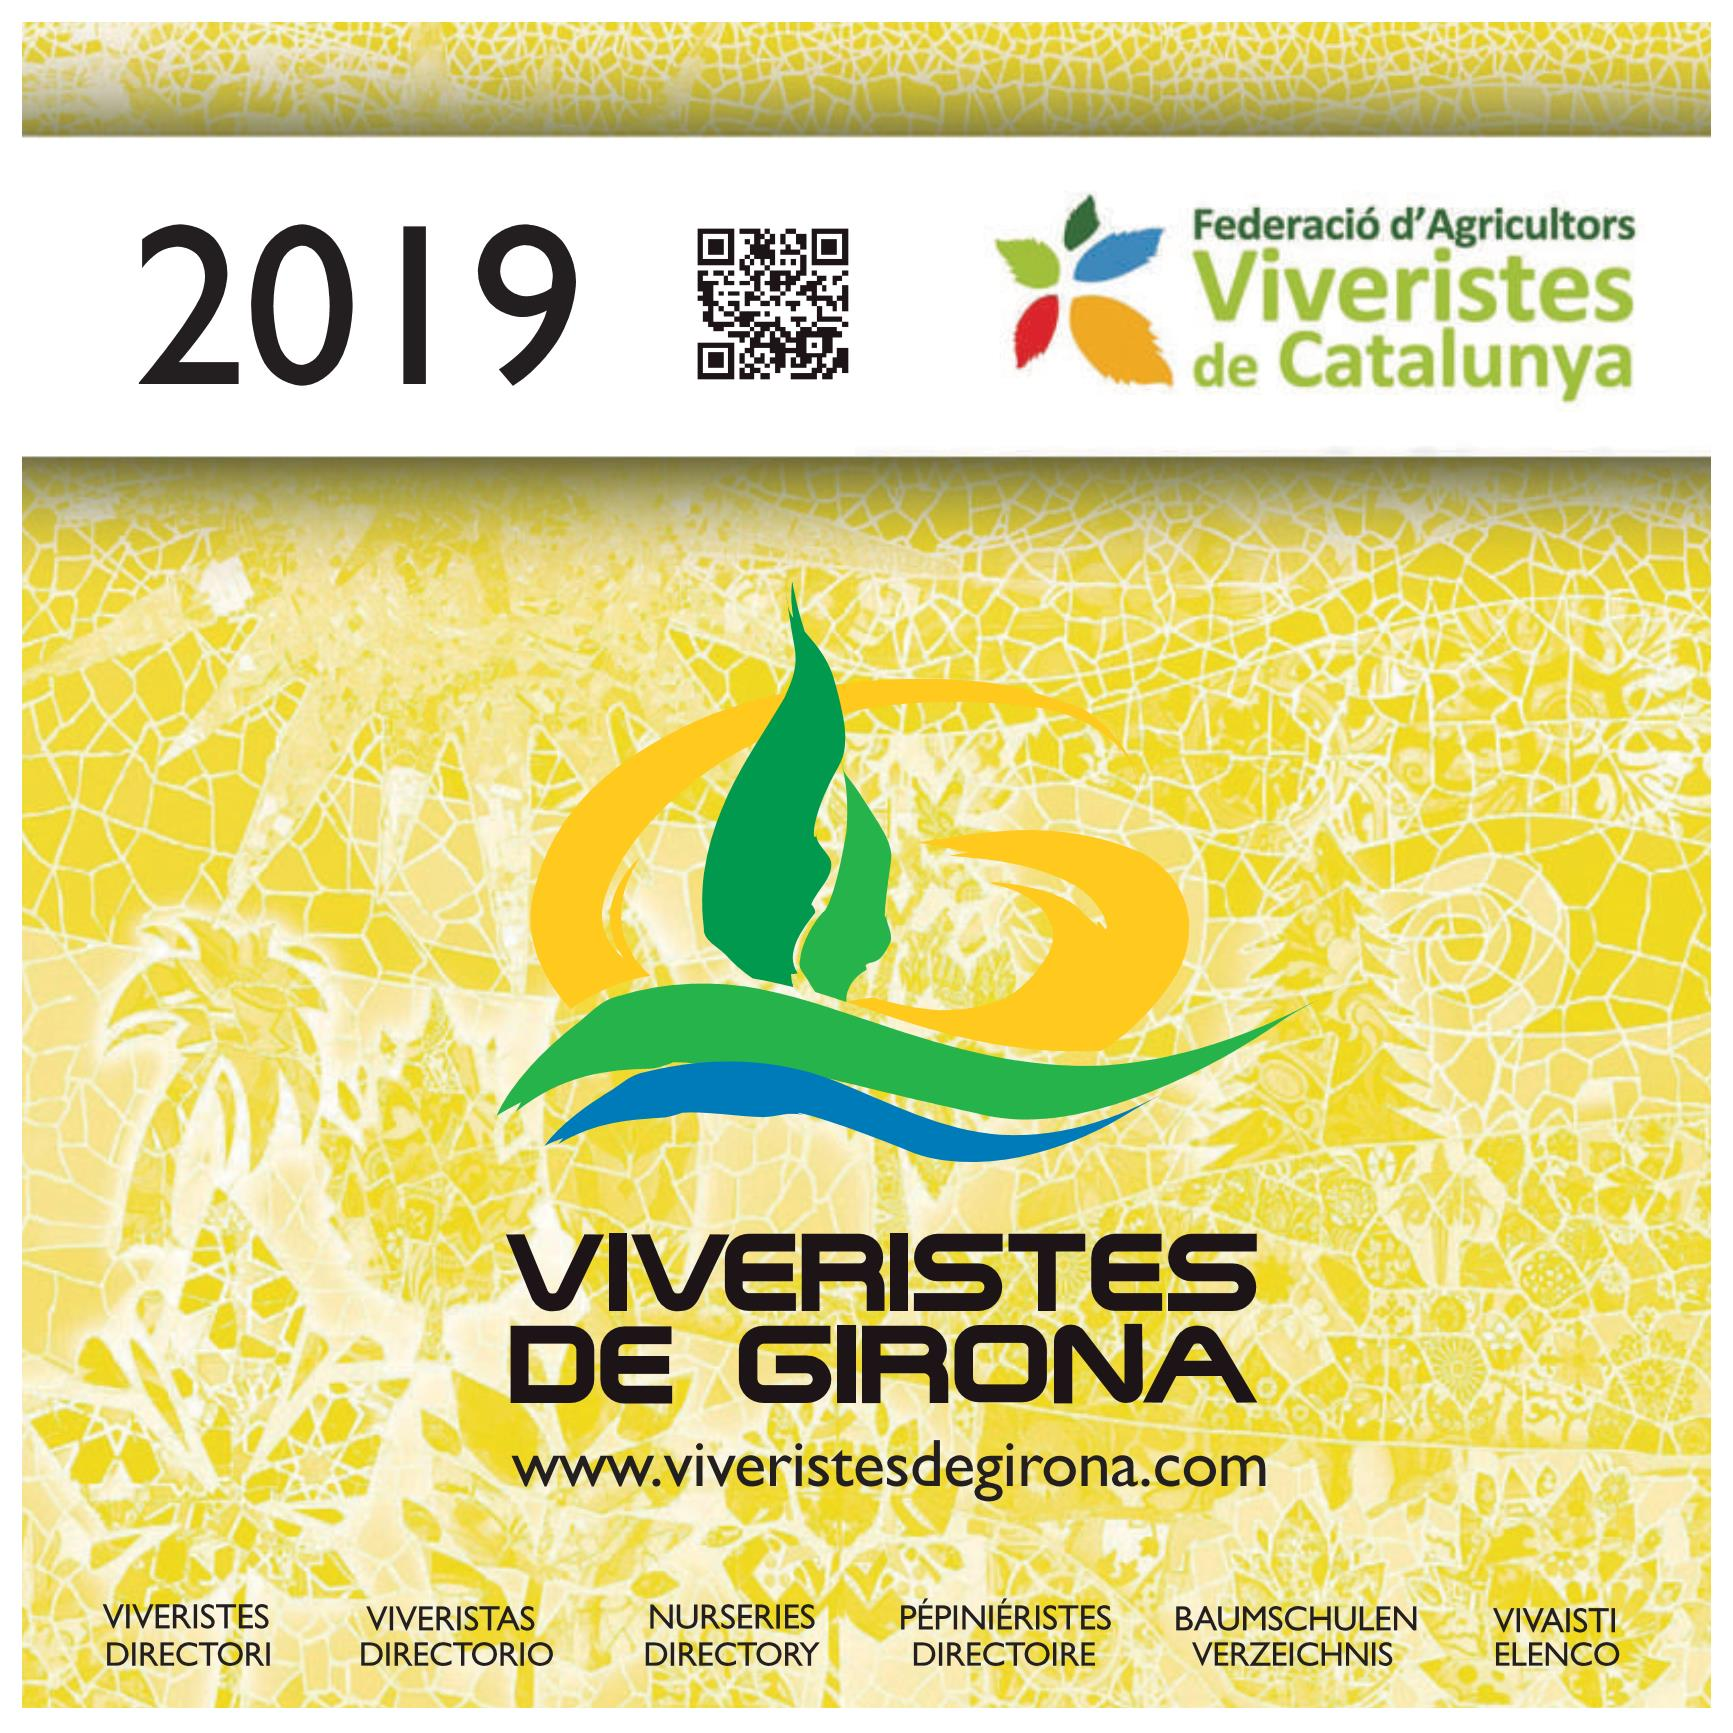 GIRONA-nurseries-vivers2019-5-Reduced.jpeg